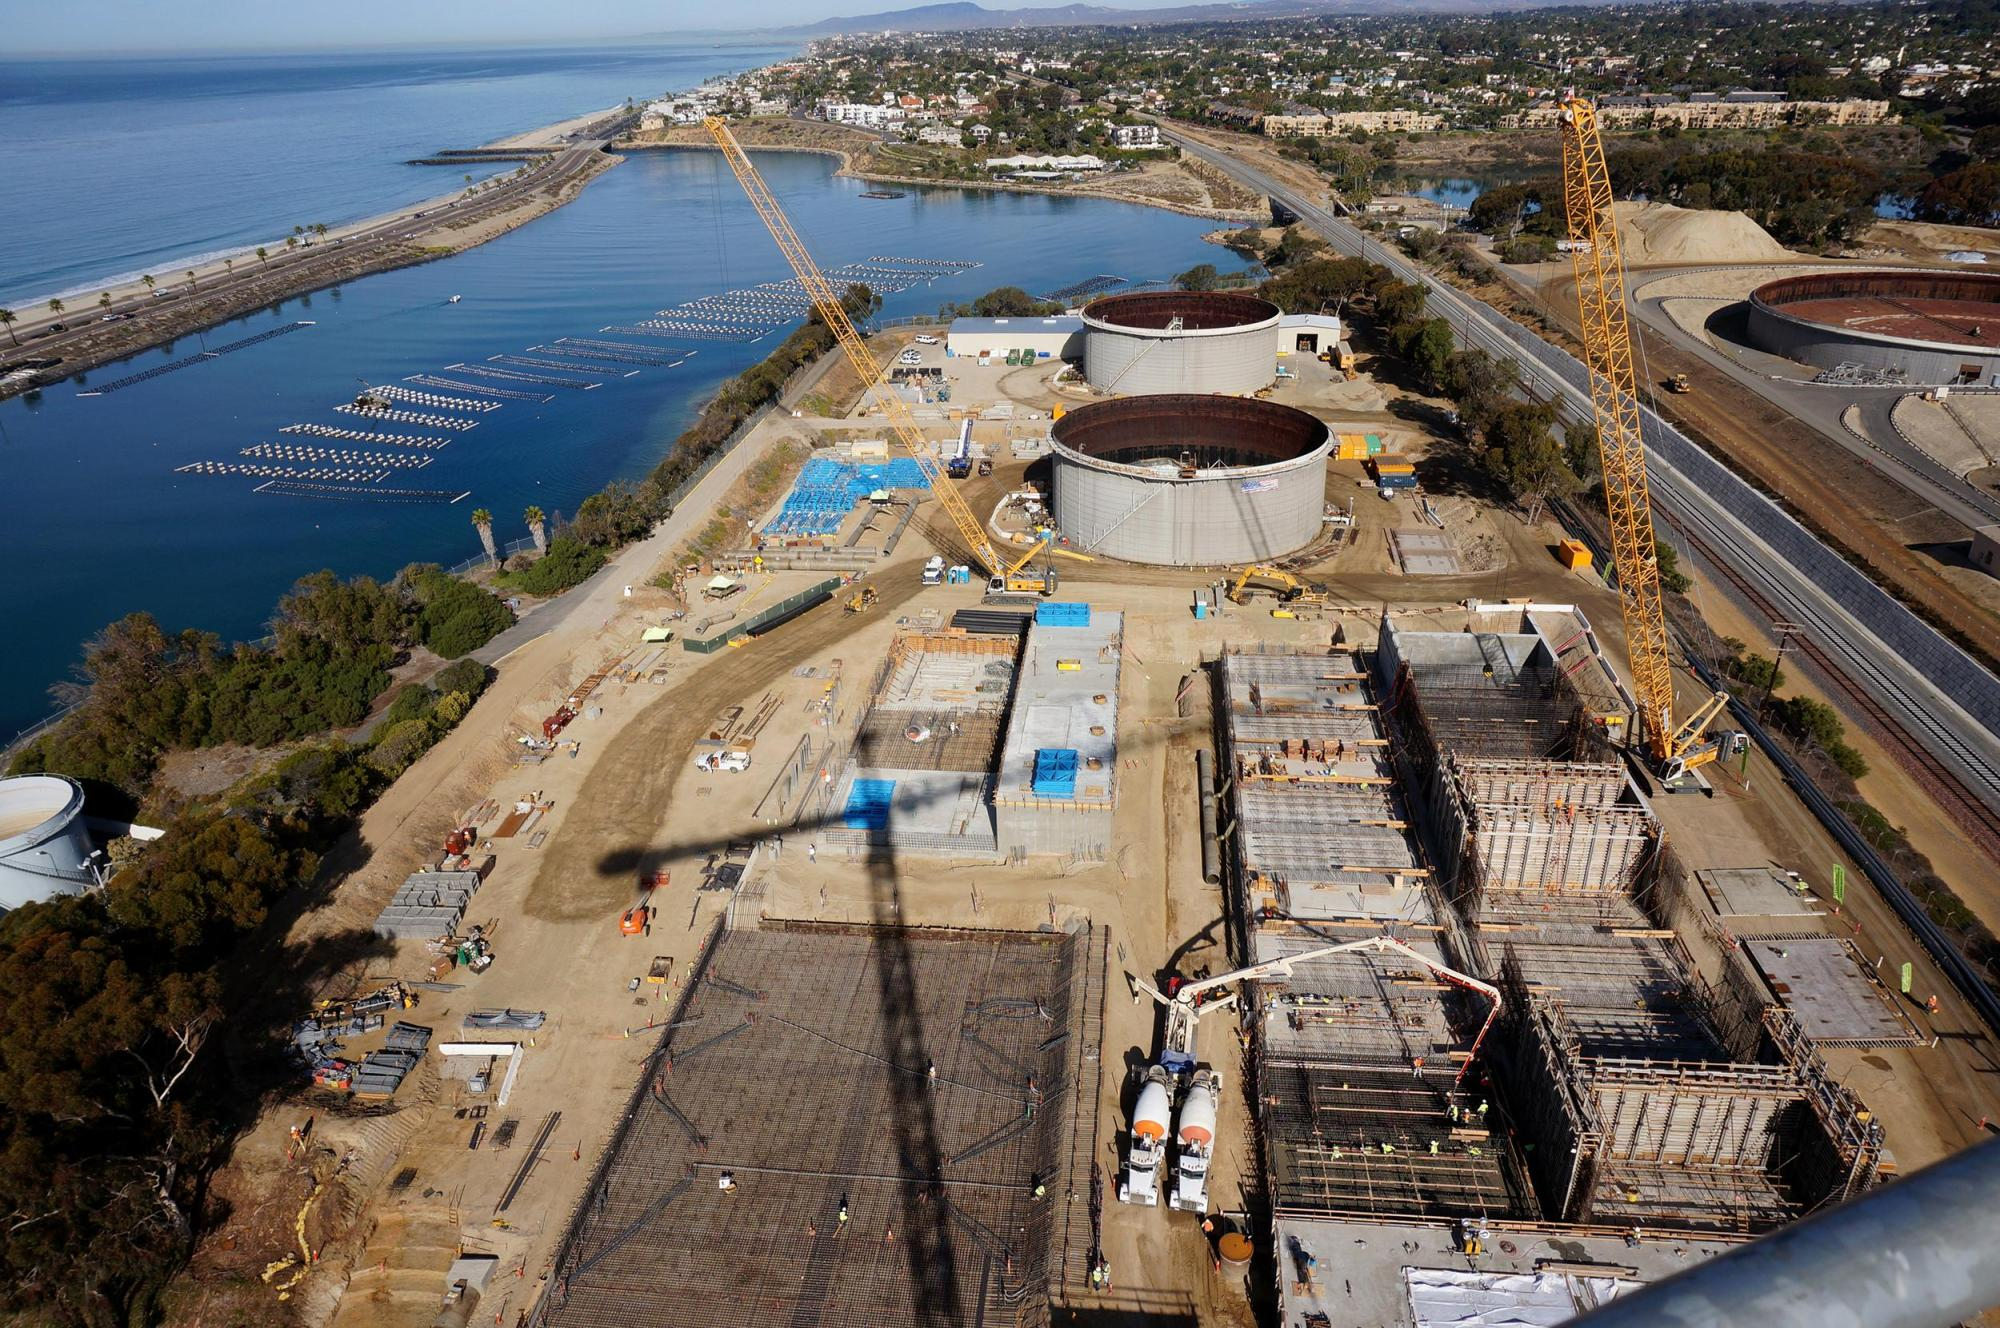 Santa-Barbara-ocean-desalination-for-new-water